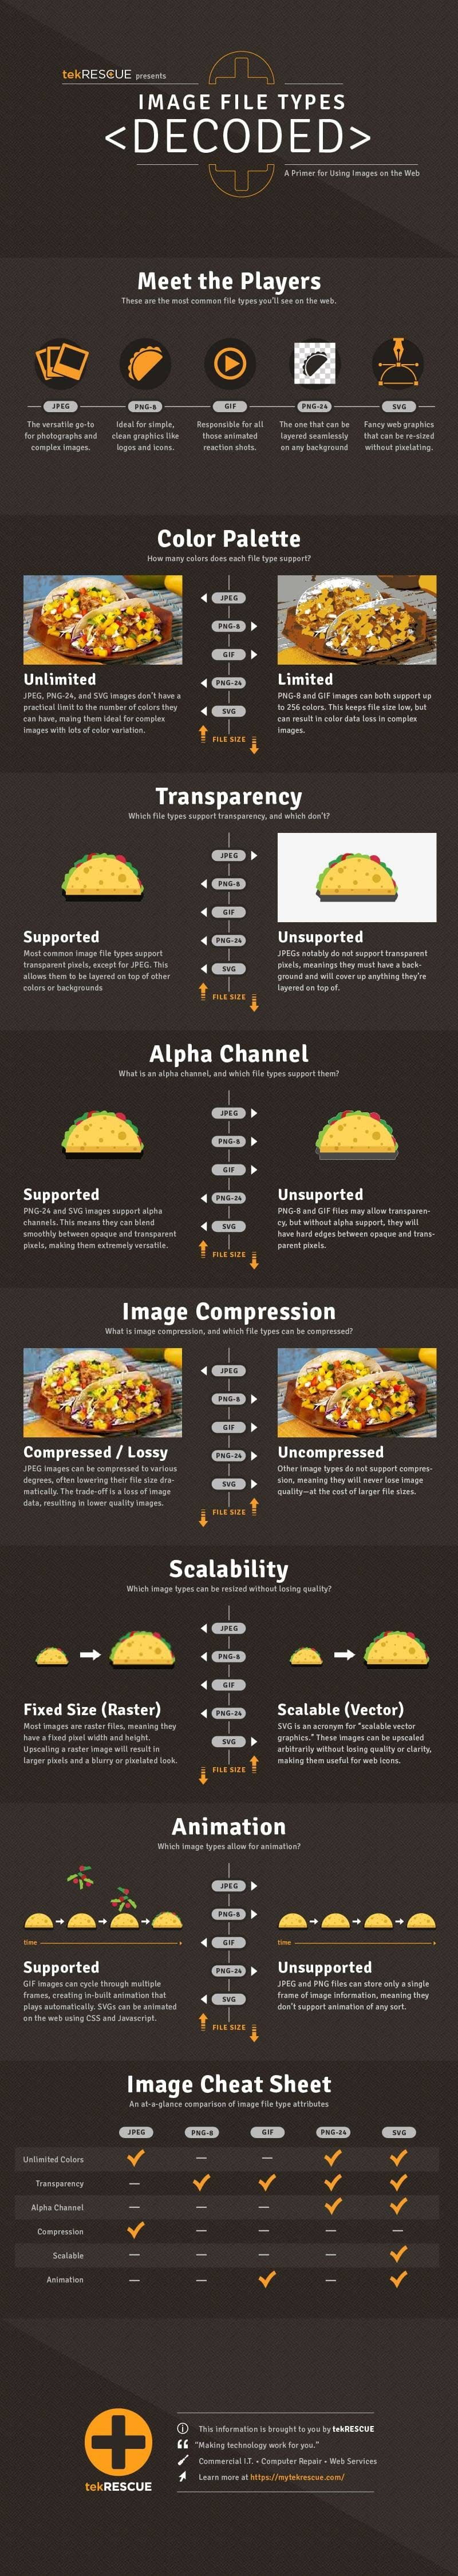 Image File Types Decoded